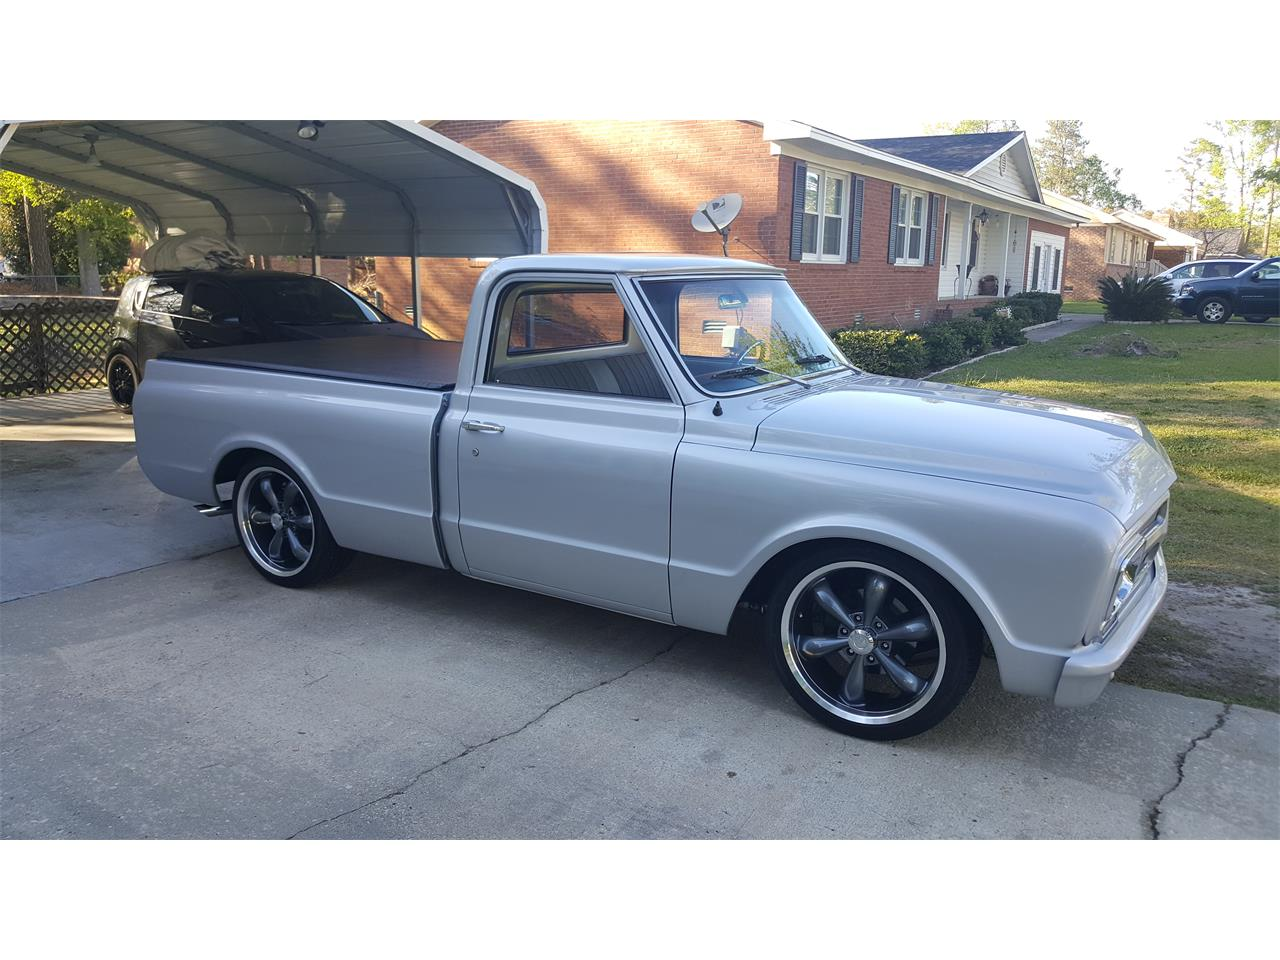 For Sale: 1967 GMC C/K 10 in Florence, South Carolina